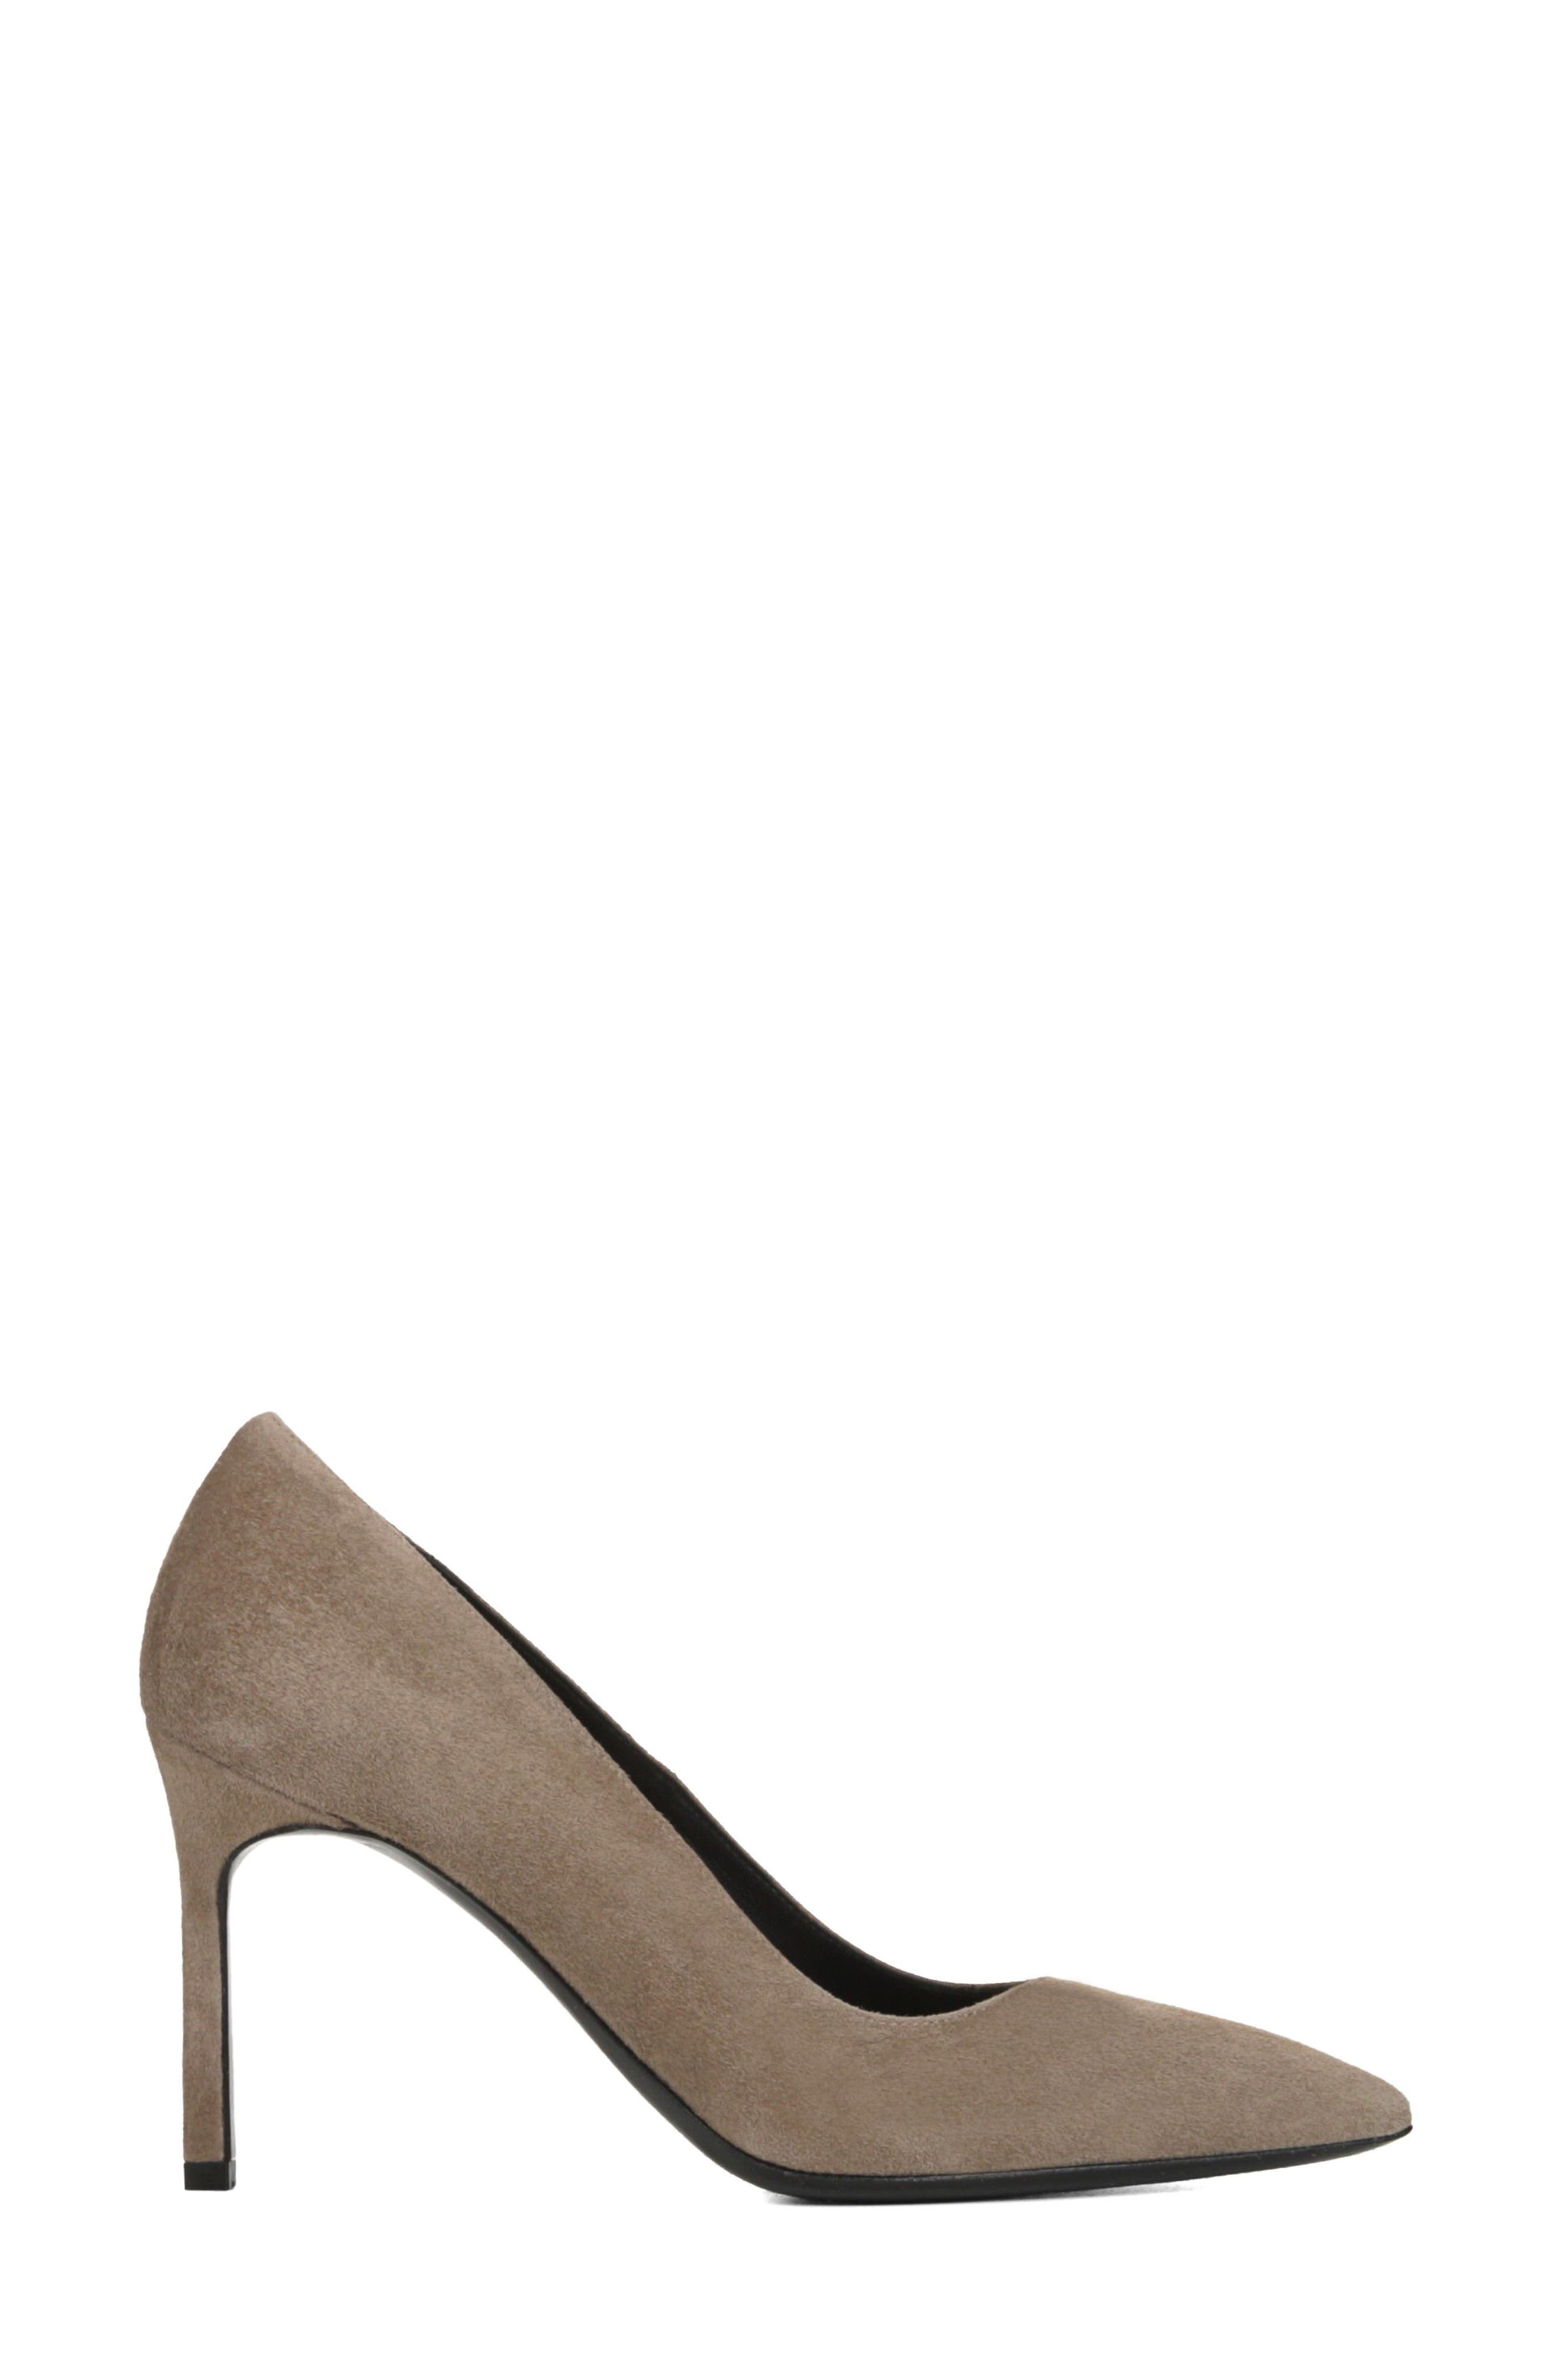 Nikole Pointy Toe Pump,                             Alternate thumbnail 3, color,                             Mink Suede